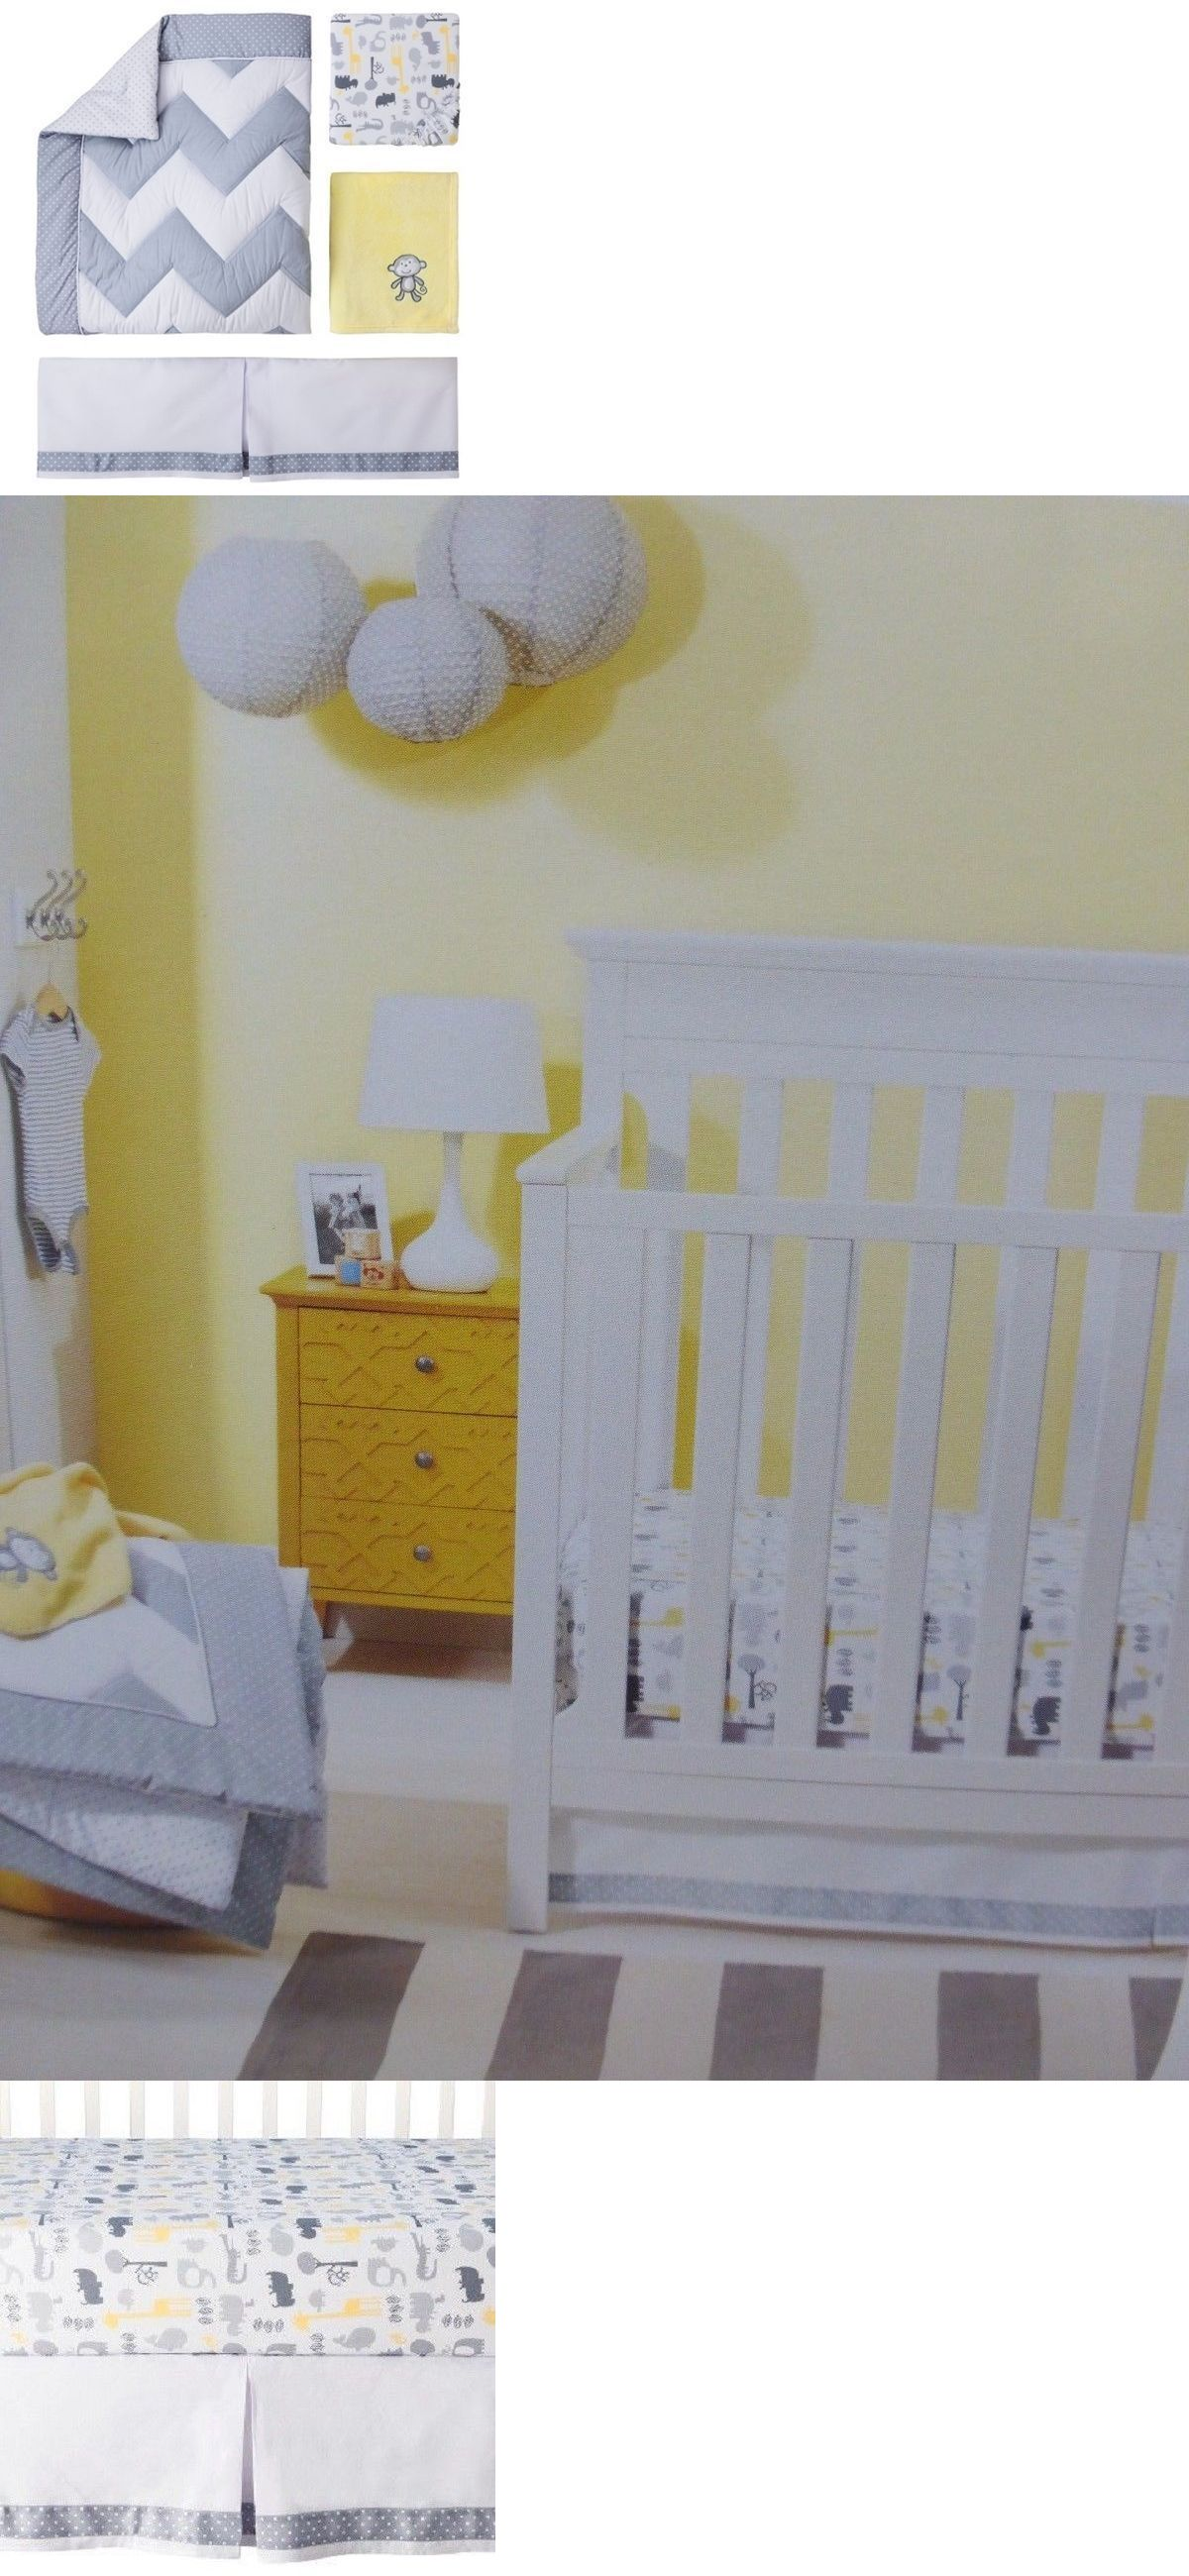 Nursery Bedding 20416 Circo Zigs N Zags 4pc Crib Set Safari Chevron Gray Yellow It Now Only 24 99 On Ebay